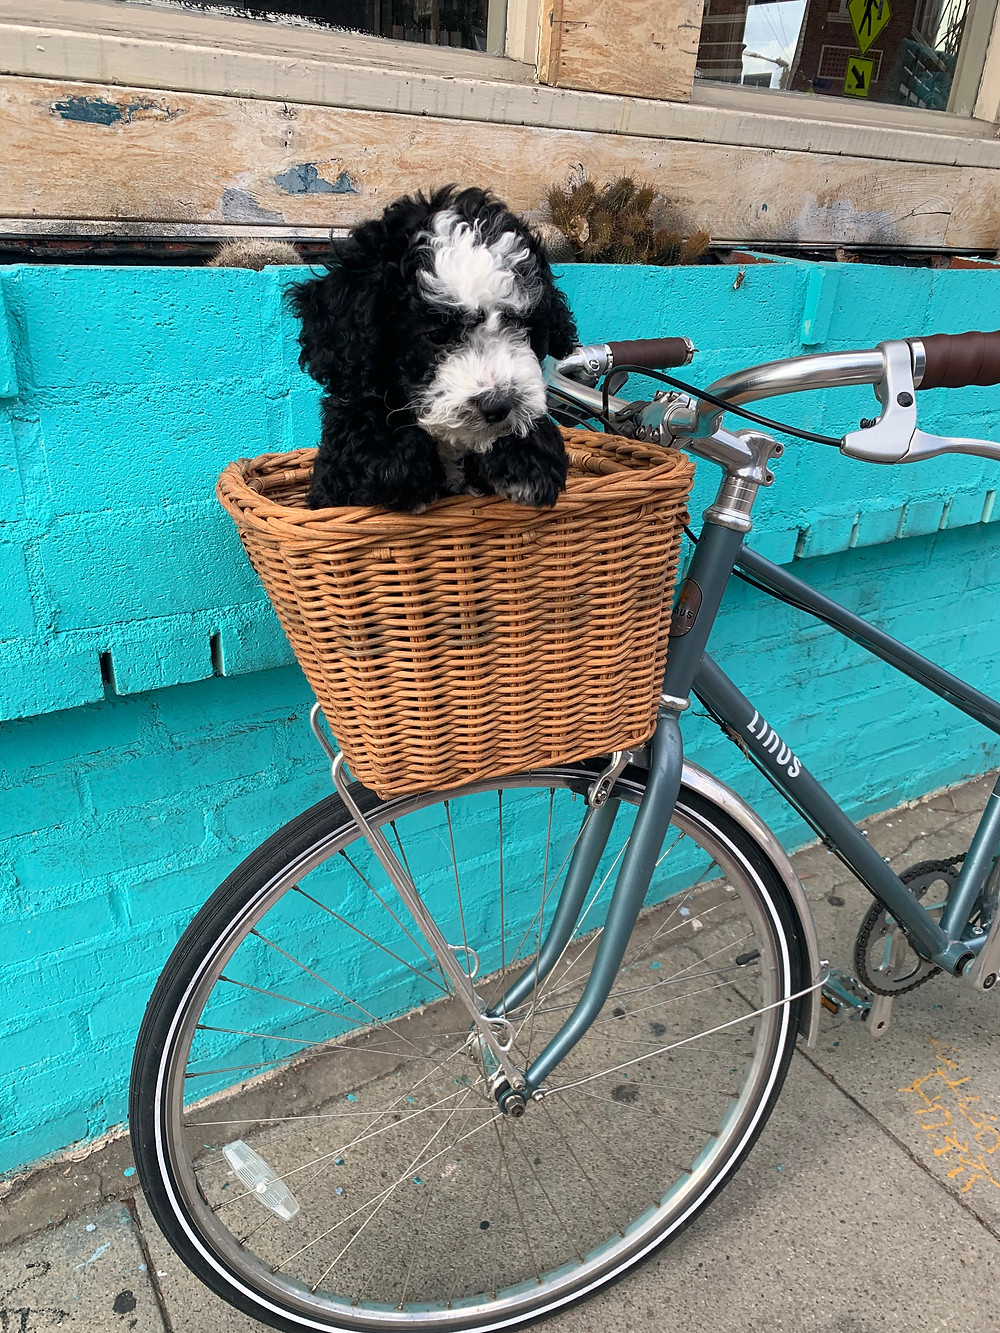 f1b mini sheepadoodle puppies for sale